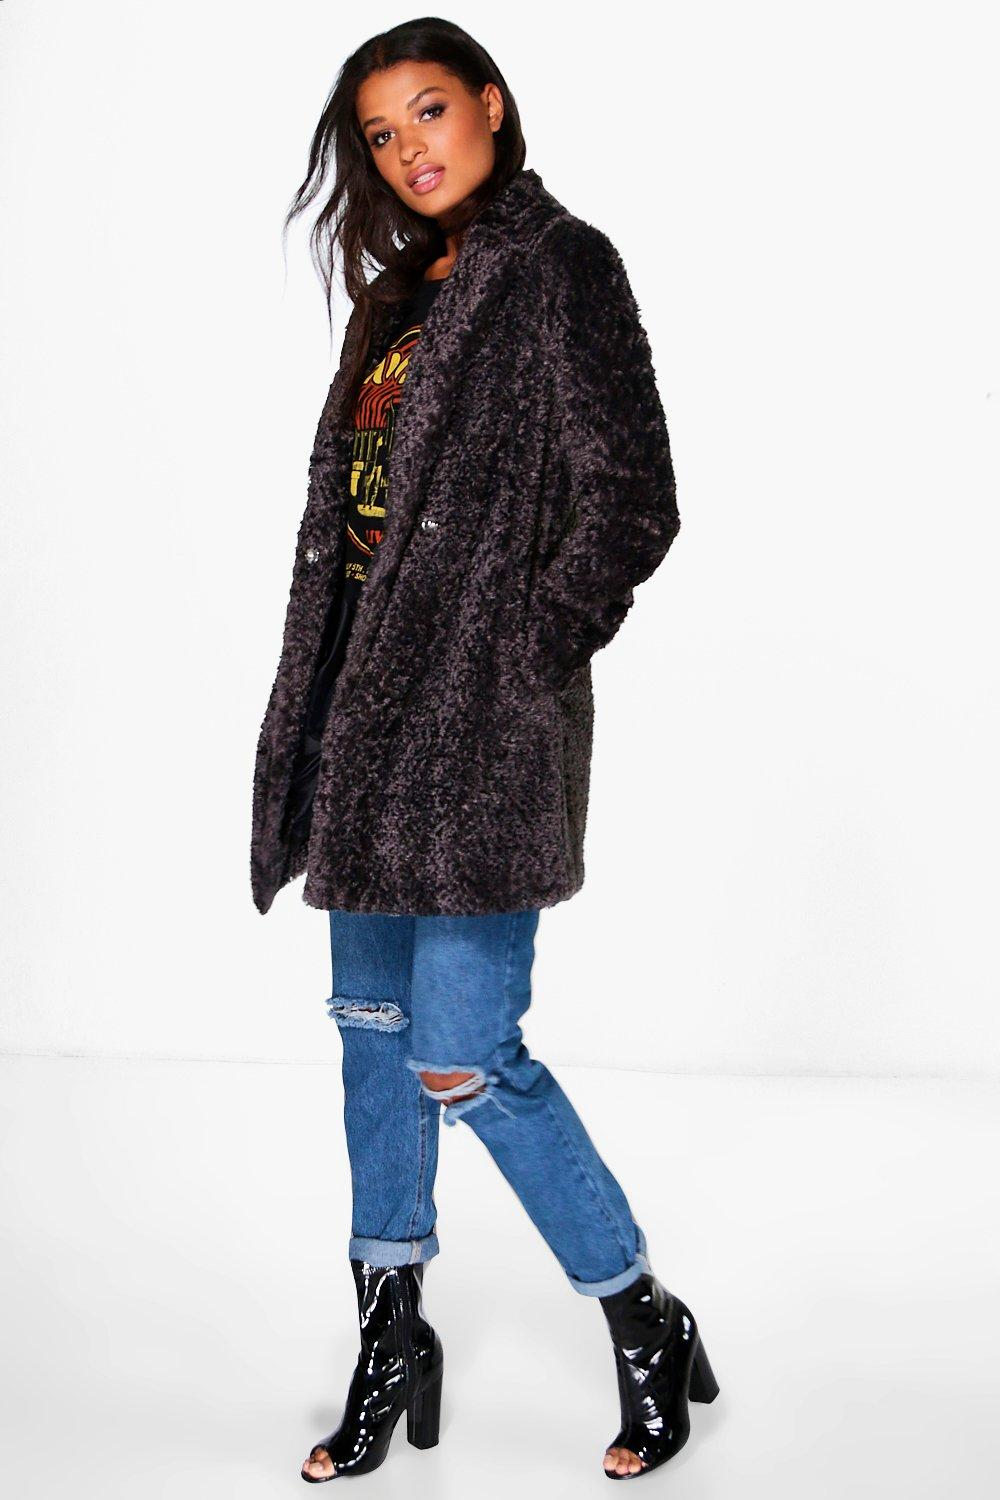 2f74fbb7b85 Womens Black Boutique Emilia Textured Faux Fur Coat. Hover to zoom